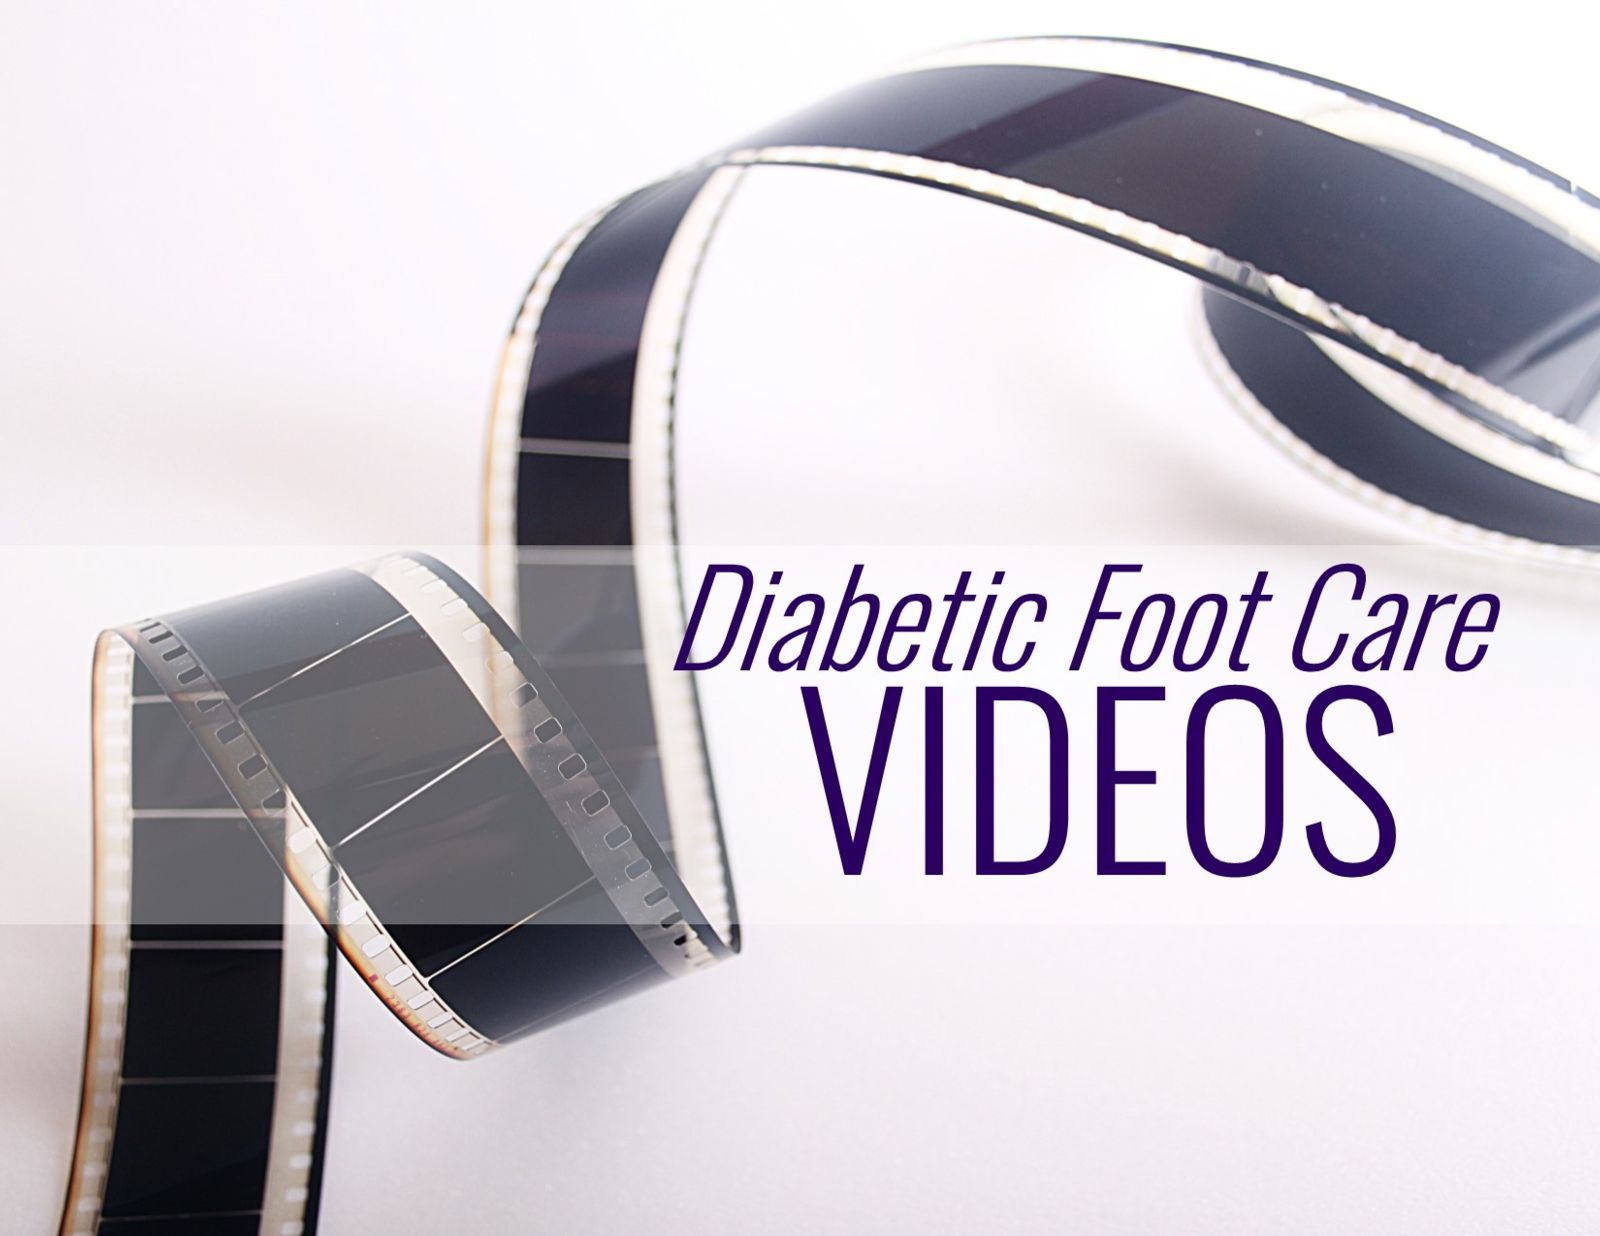 movie reel with words: Diabetic Foot Care Videos